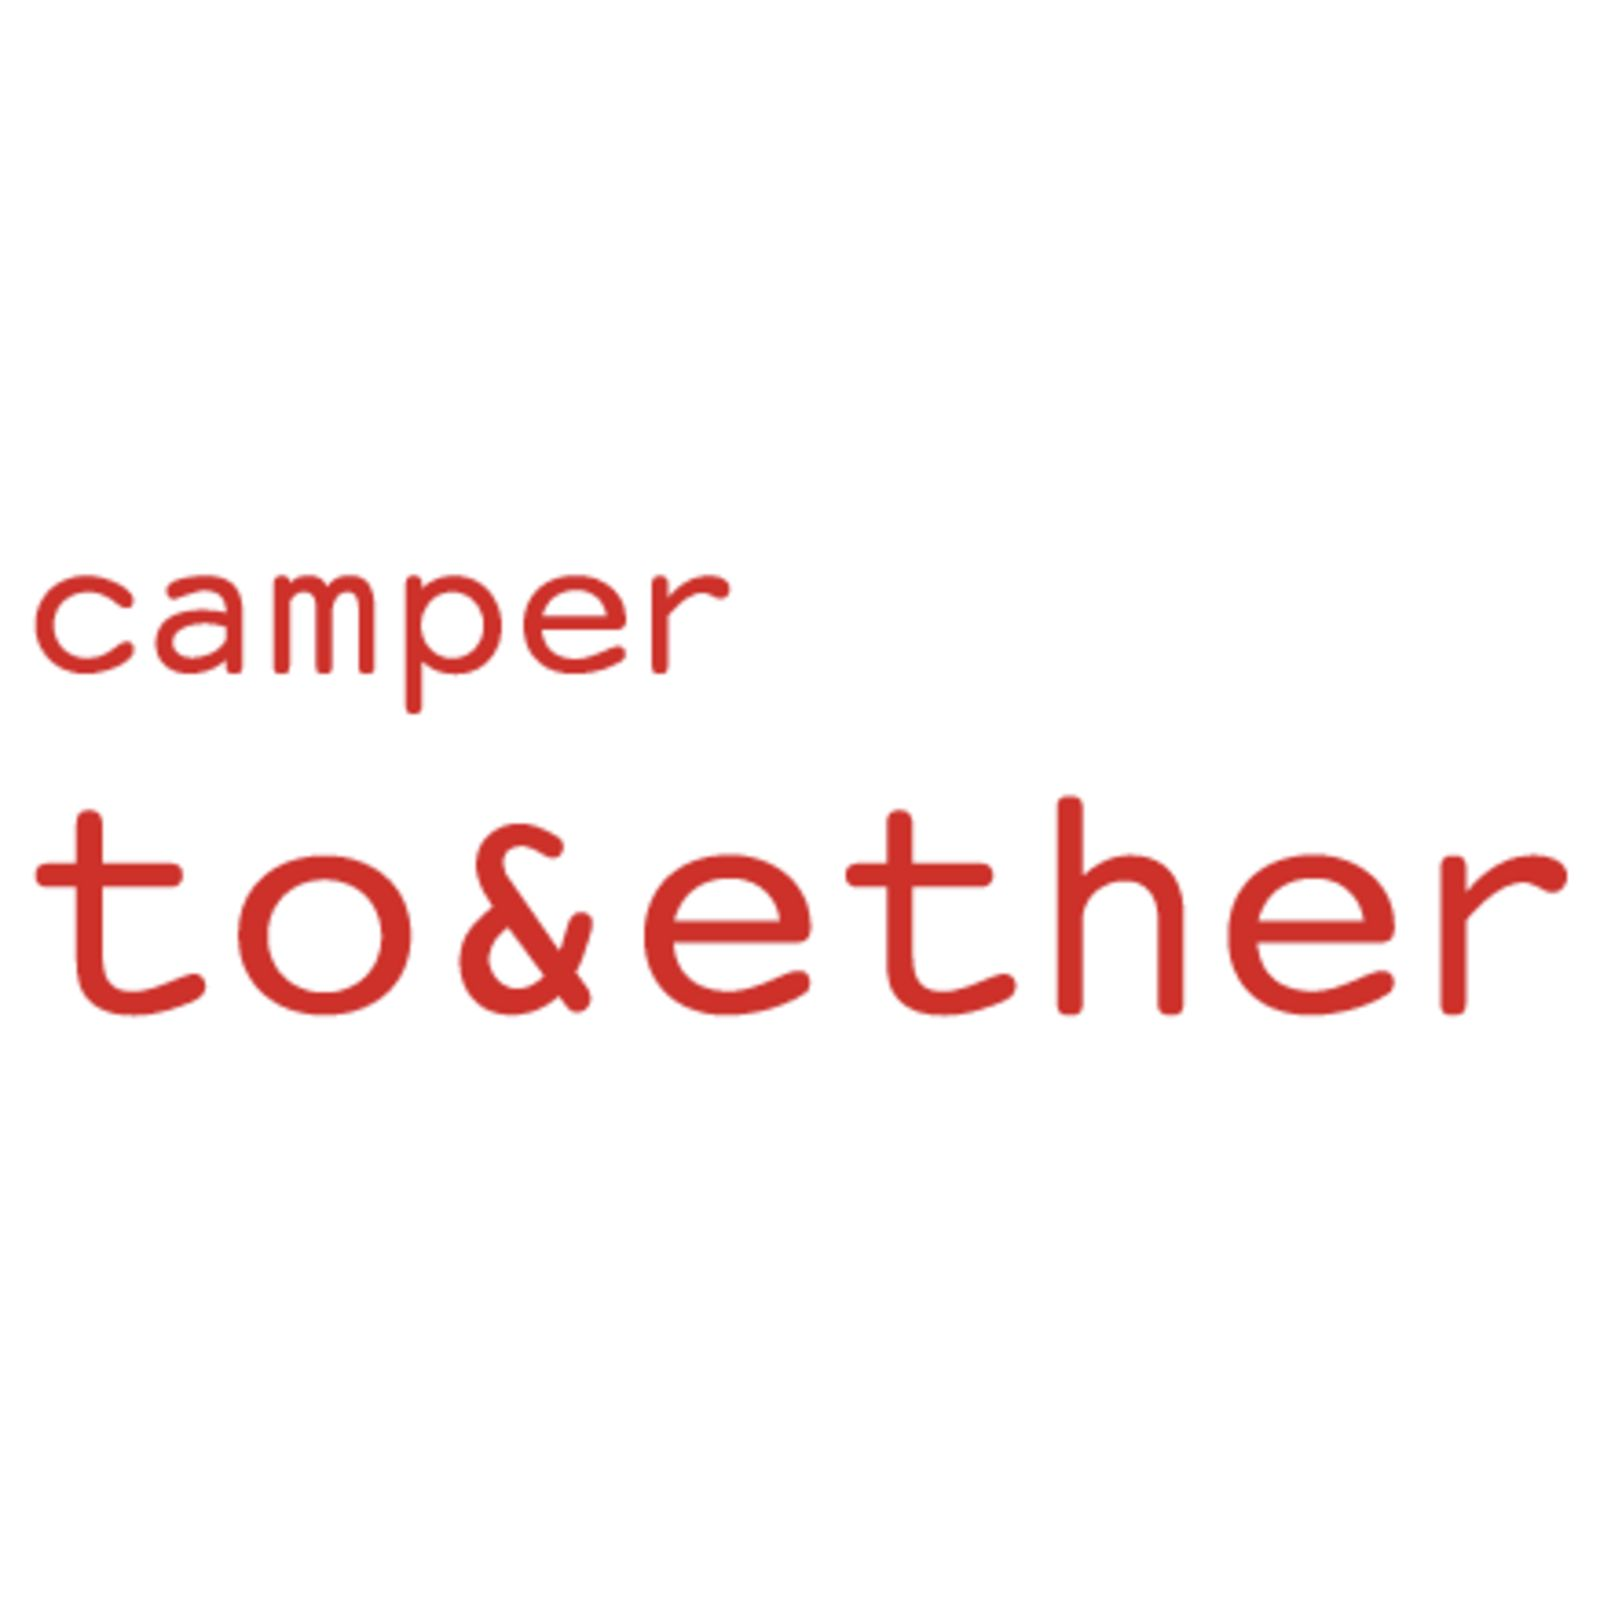 CAMPER TOGETHER